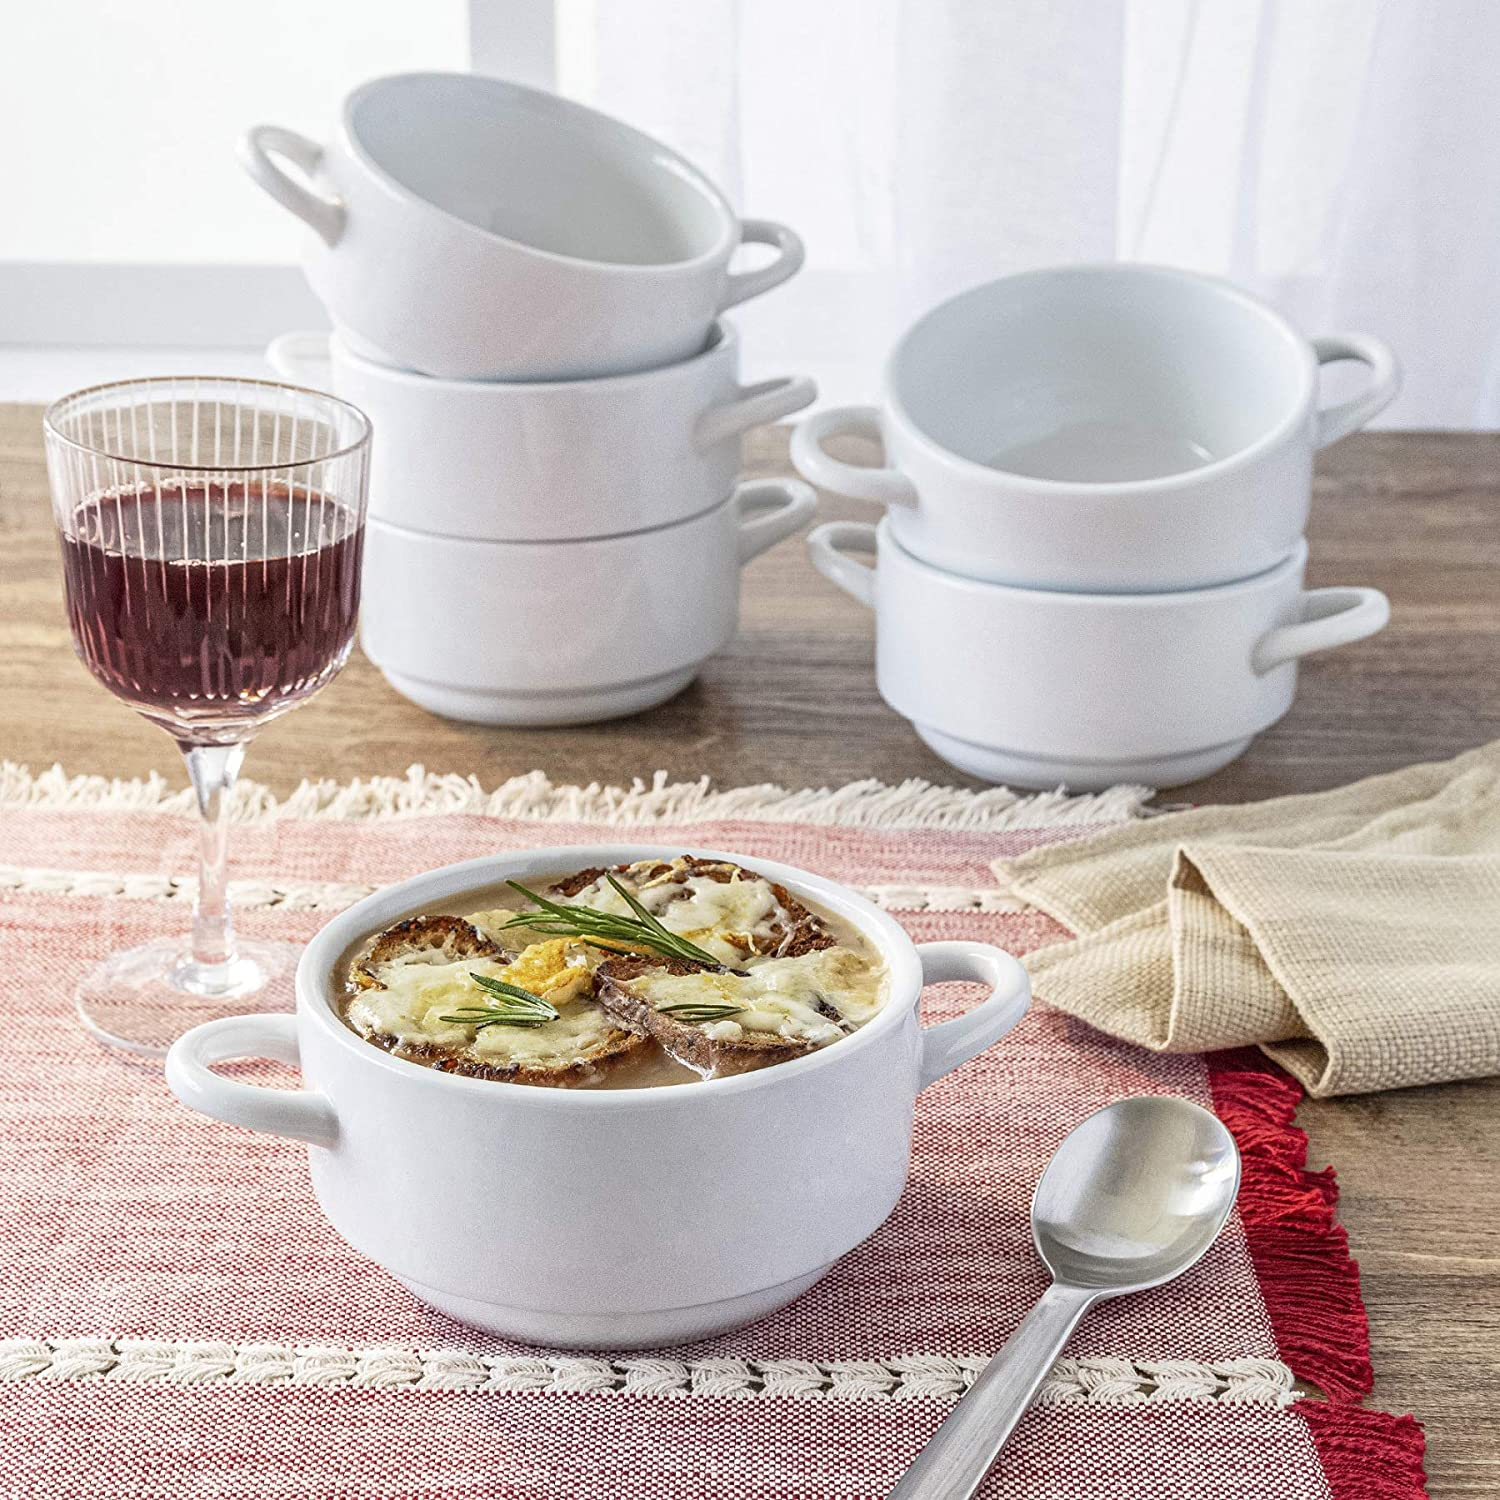 JN Porcelain メーカー直送 French Onion 70%OFFアウトレット Soup Set 6. Bowls of -